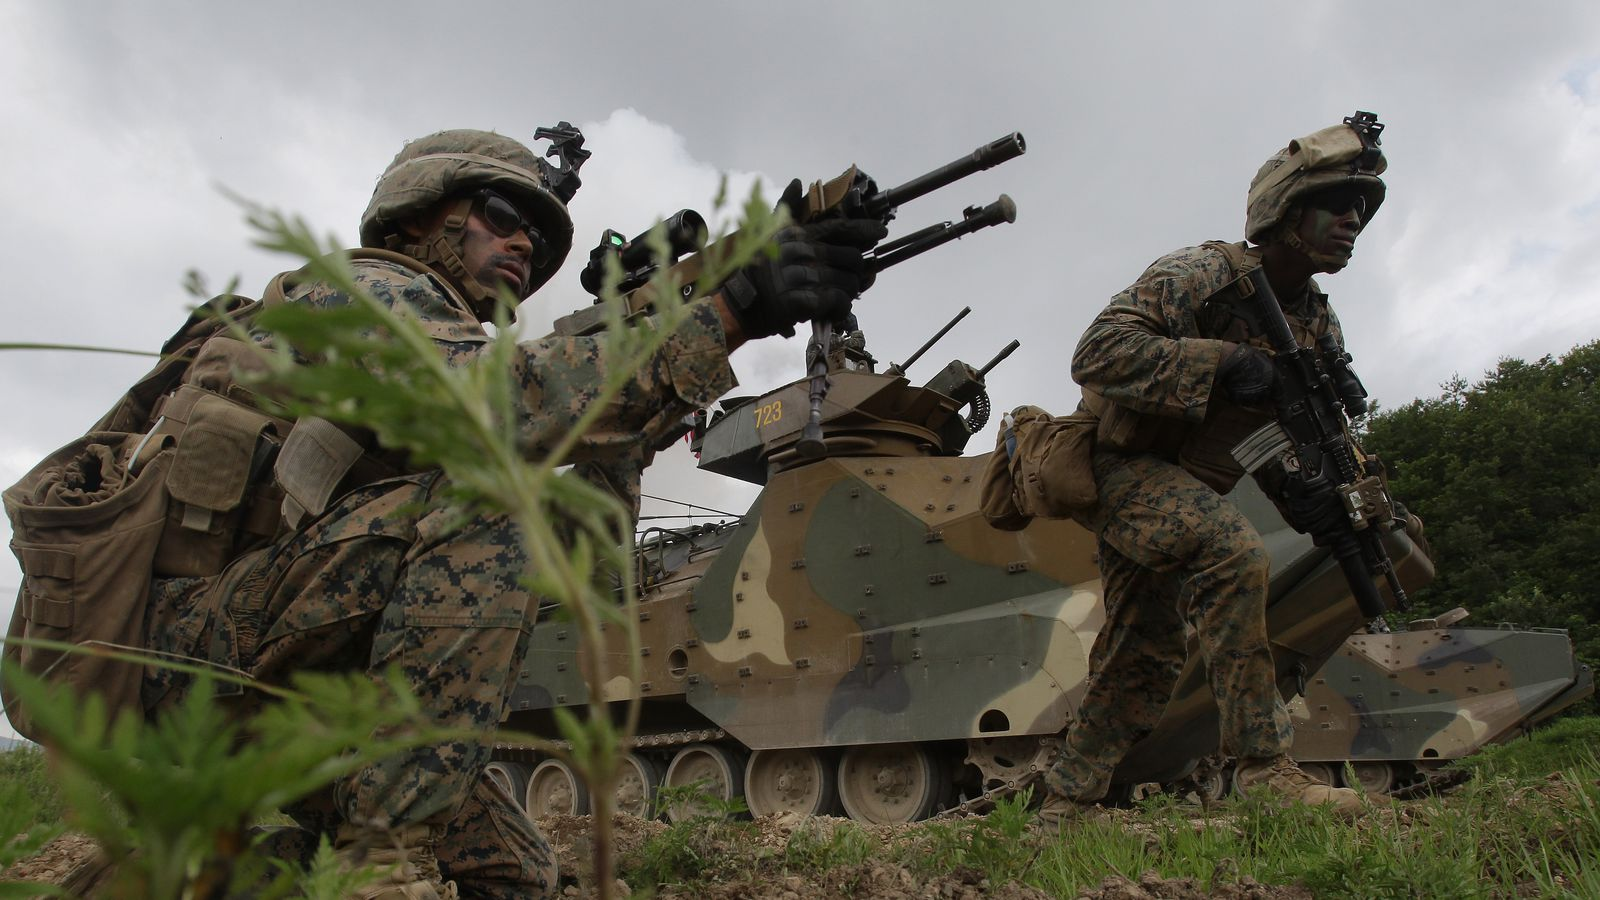 US Marine Corps issues video statement on naked photo